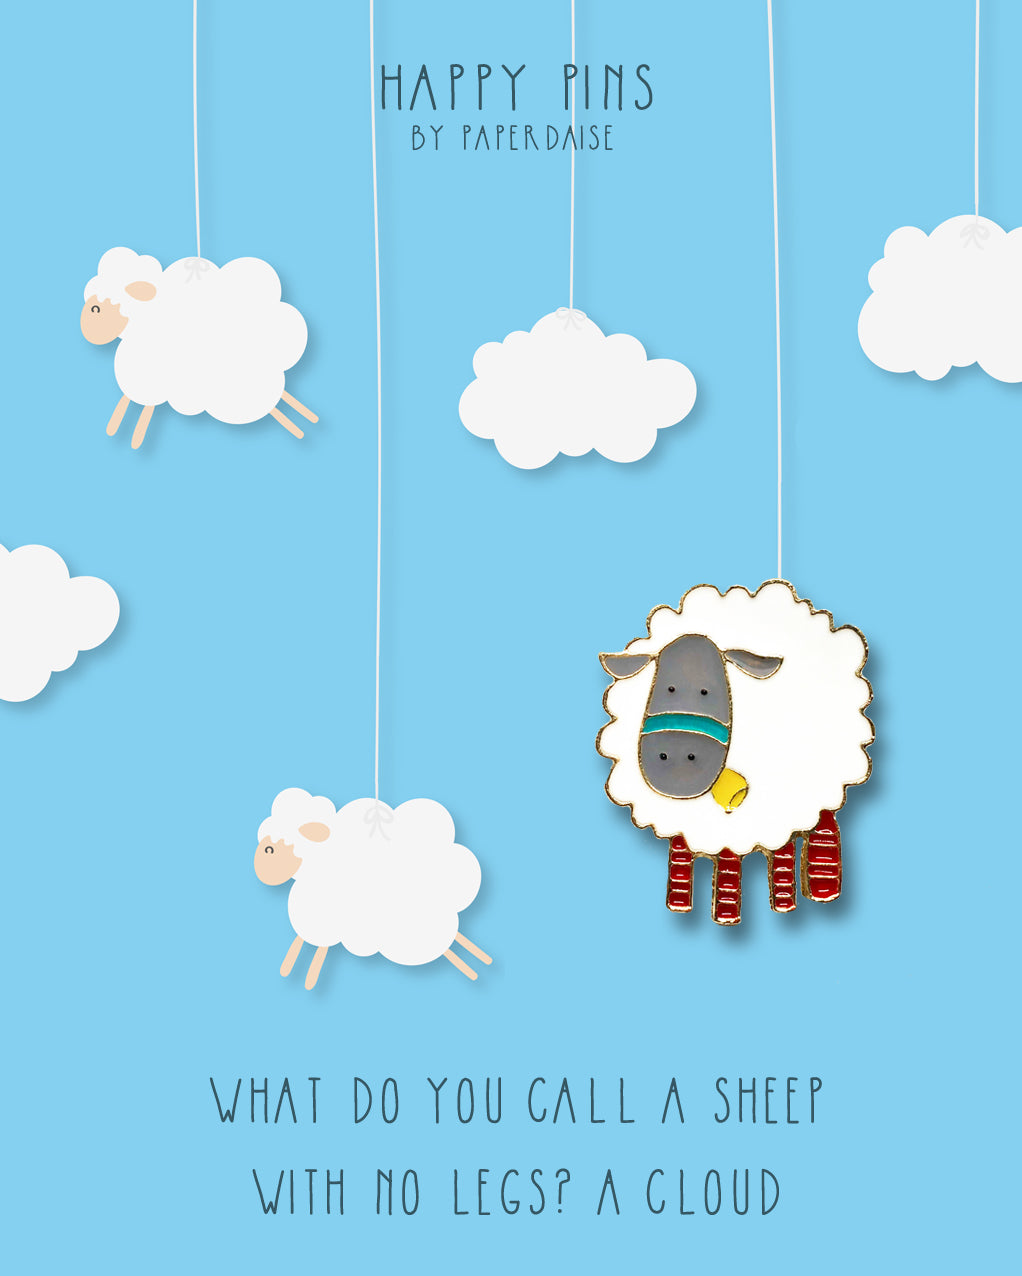 Sheep Is A Cloud With No Legs Pin